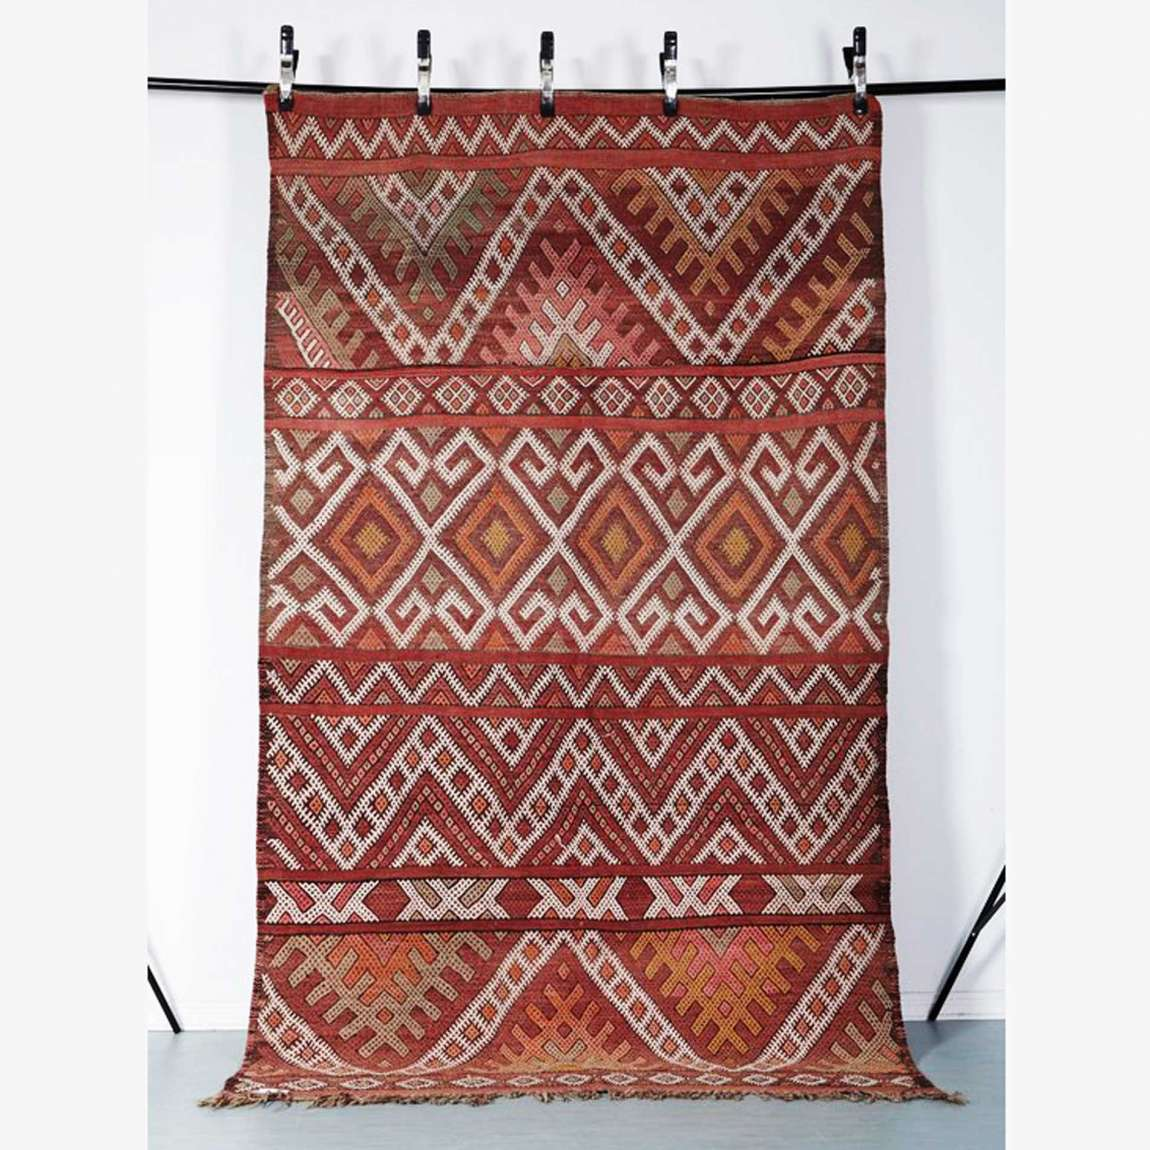 Kelim Berlin Vintage Kelim Rug Mednin Handmade With Colourful Geometric Patterns